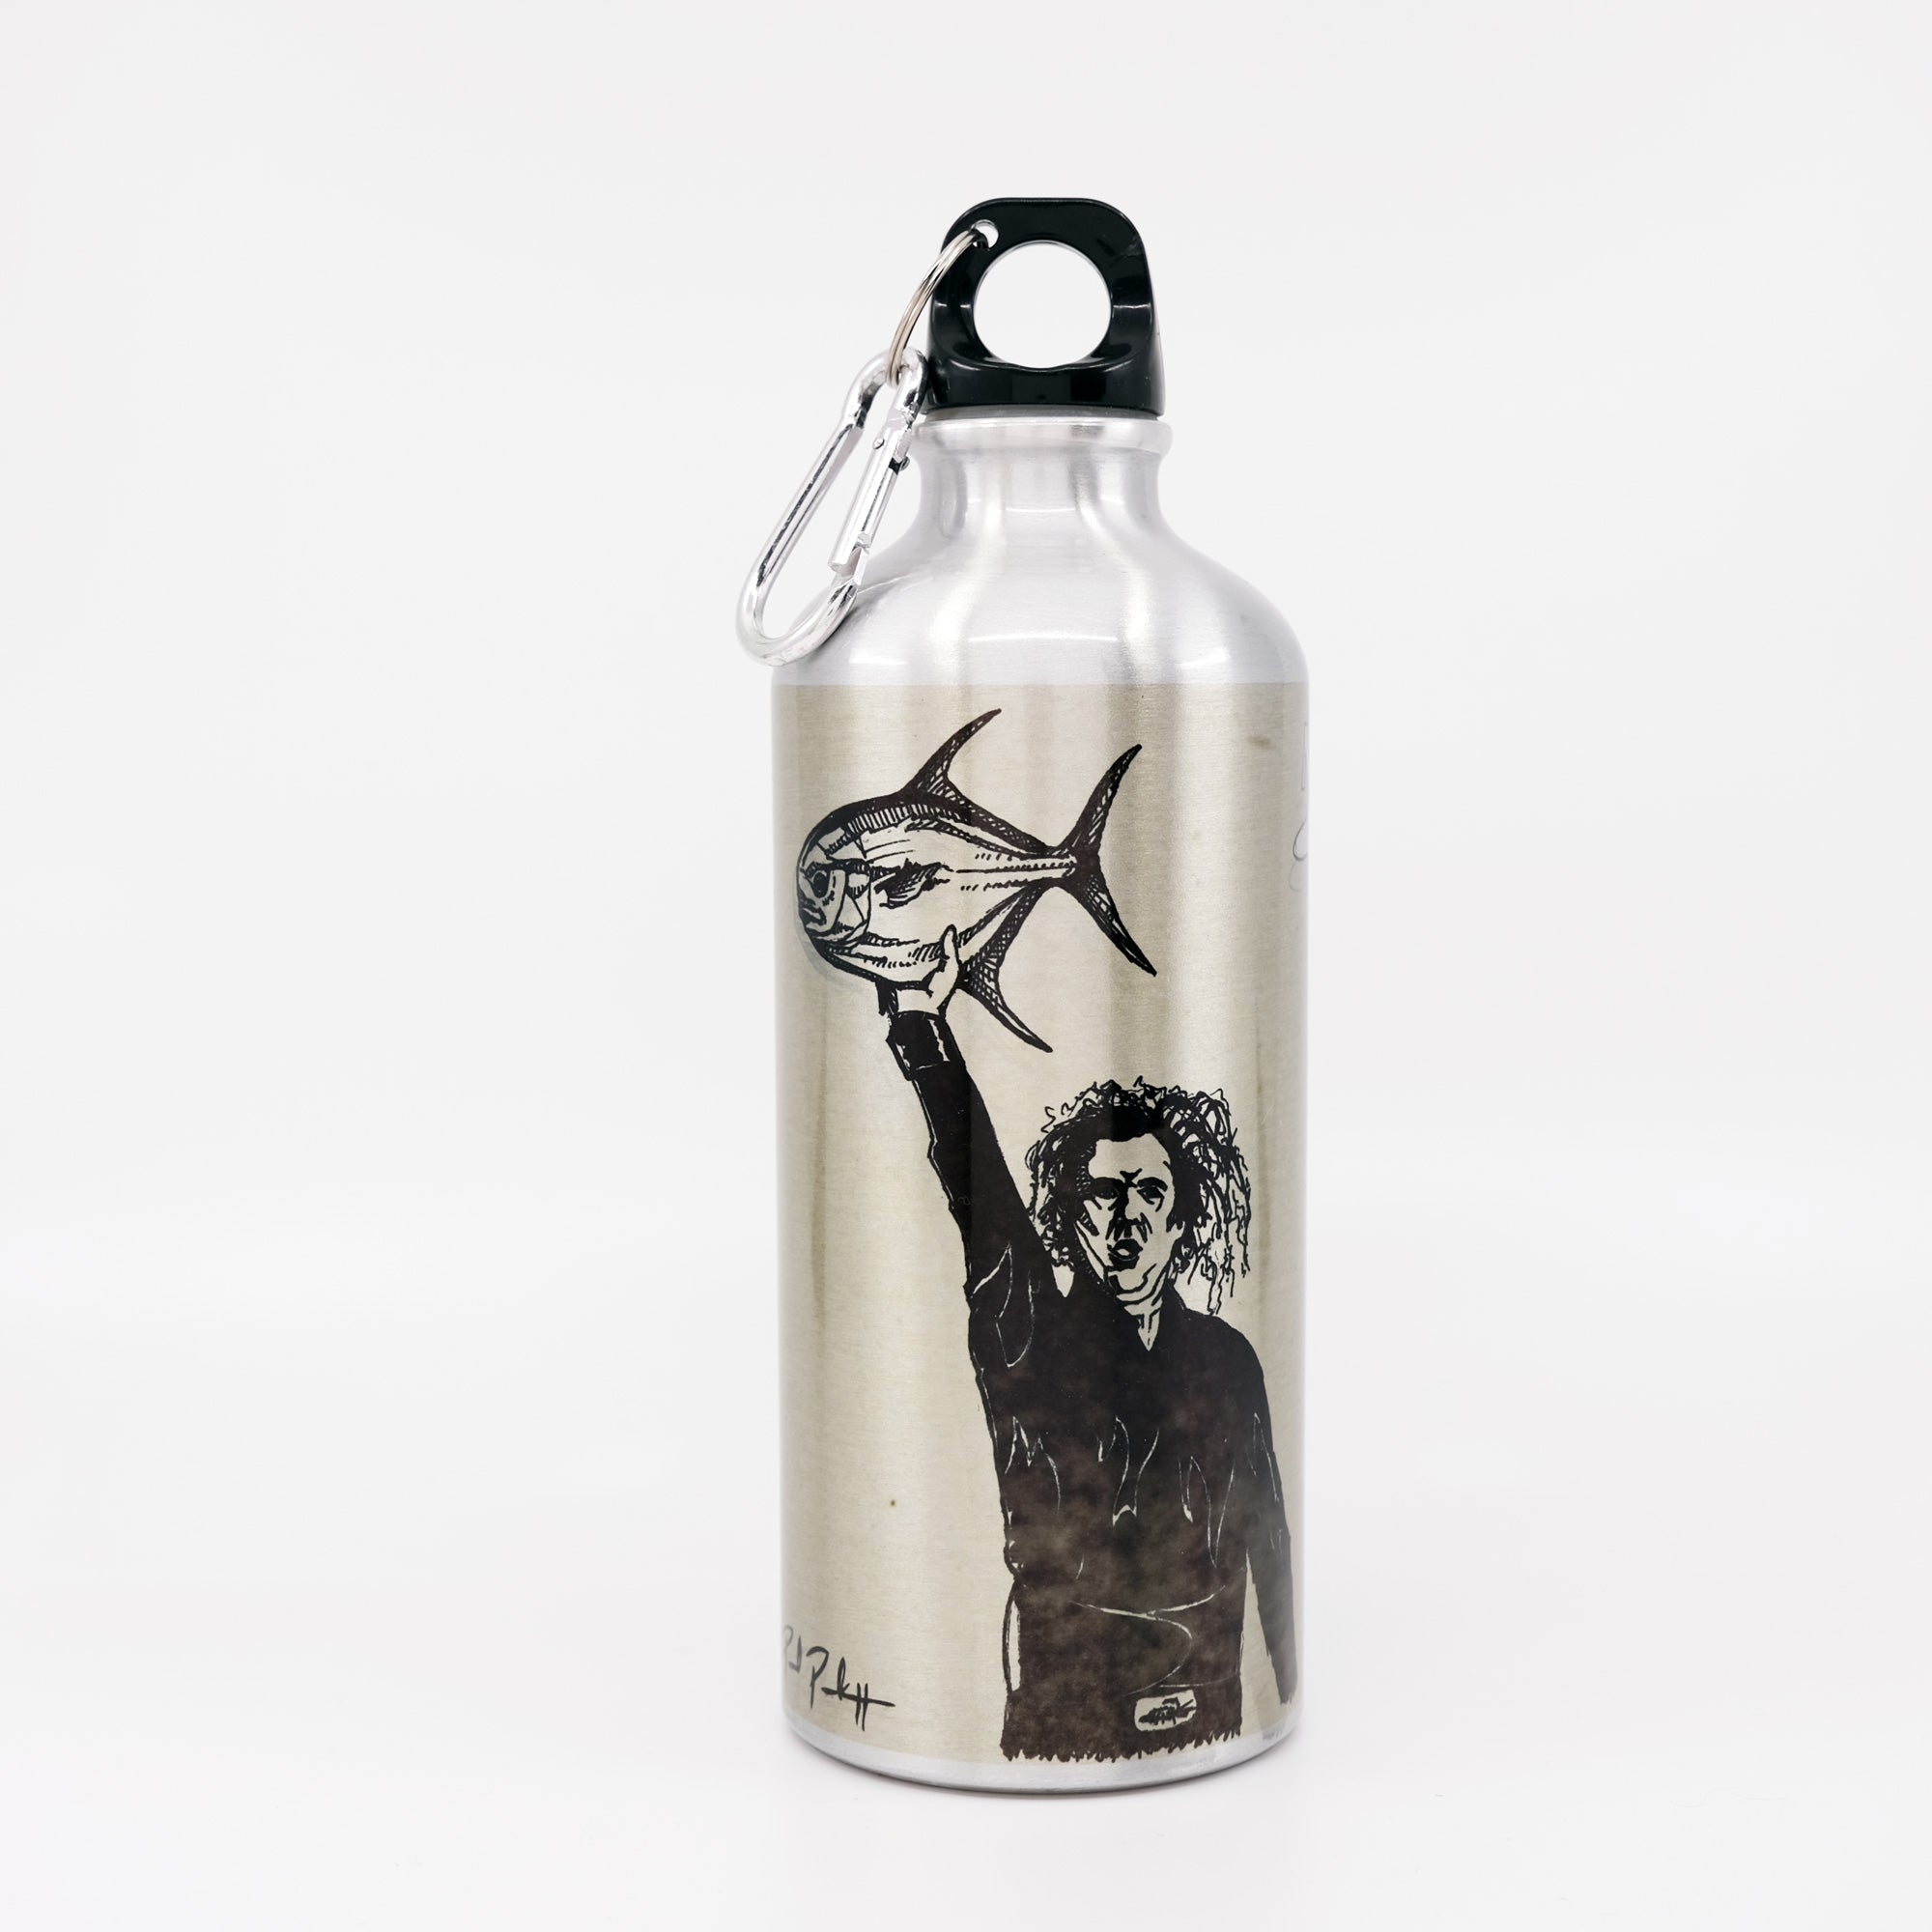 MFC Water Bottle - Pucket's Kingpin